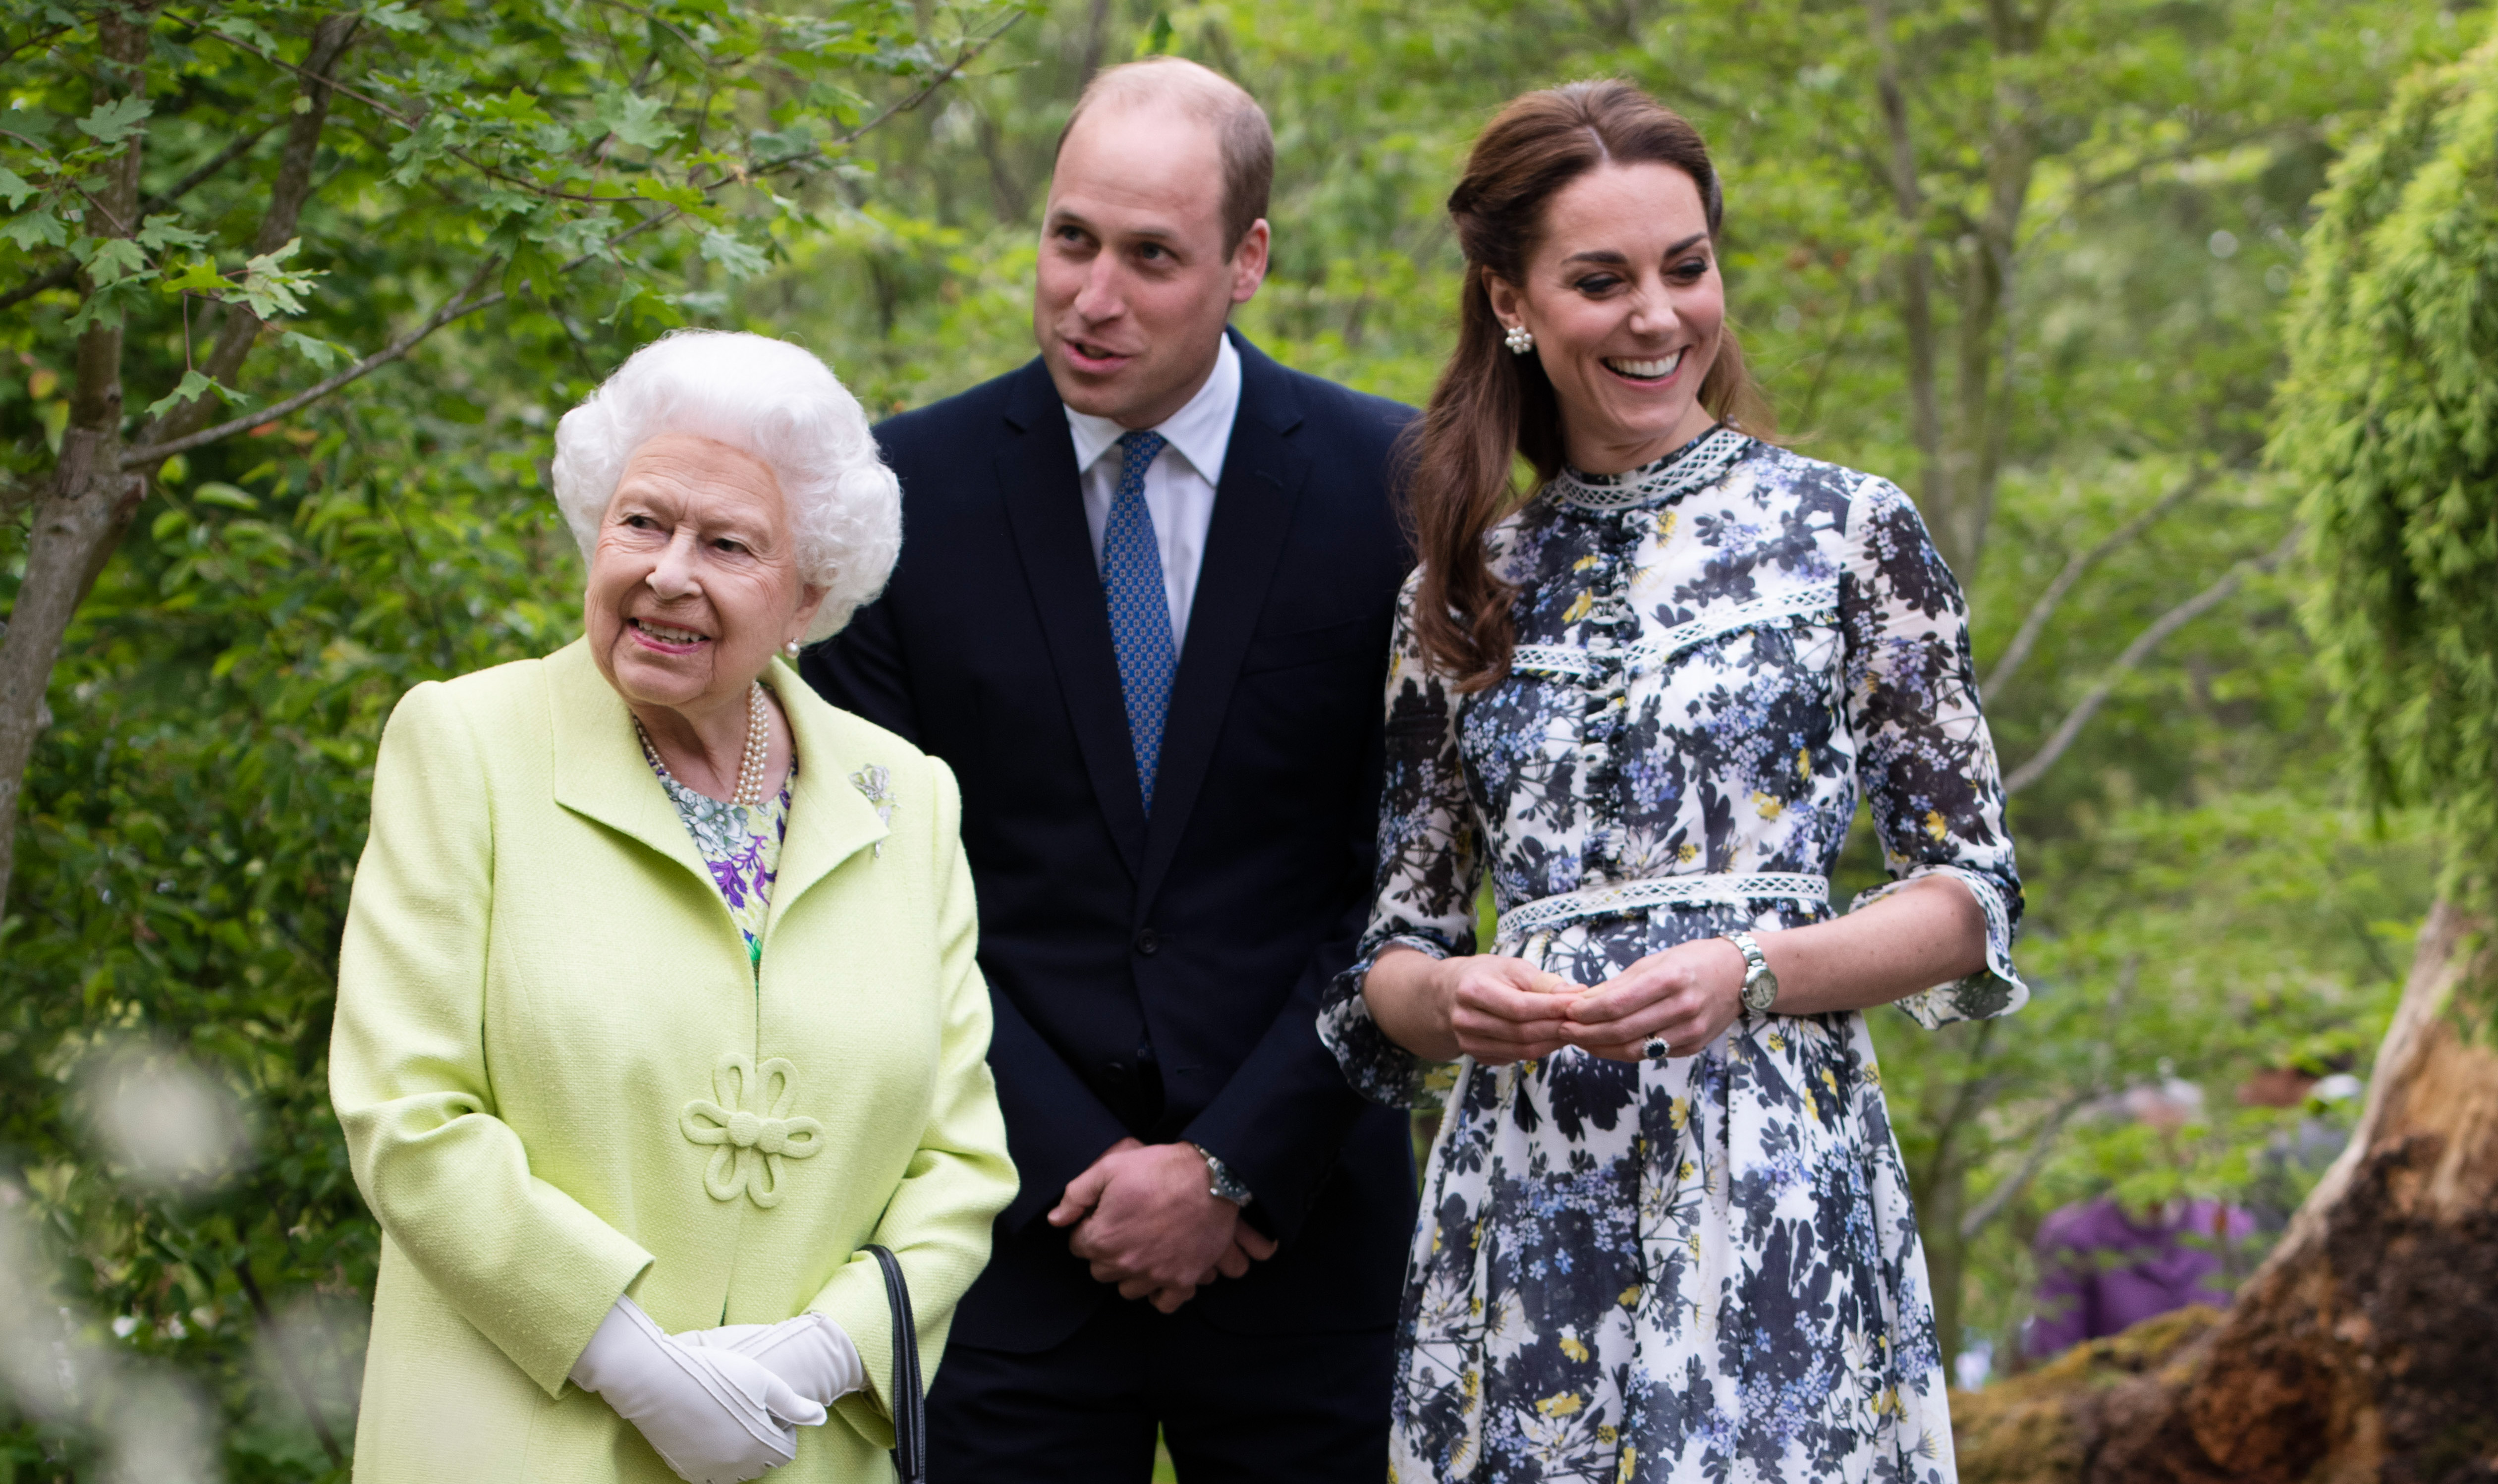 The Queen with The Duke and Duchess of Cambridge in the RHS Back to Nature Garden at the Chelsea Flower Show